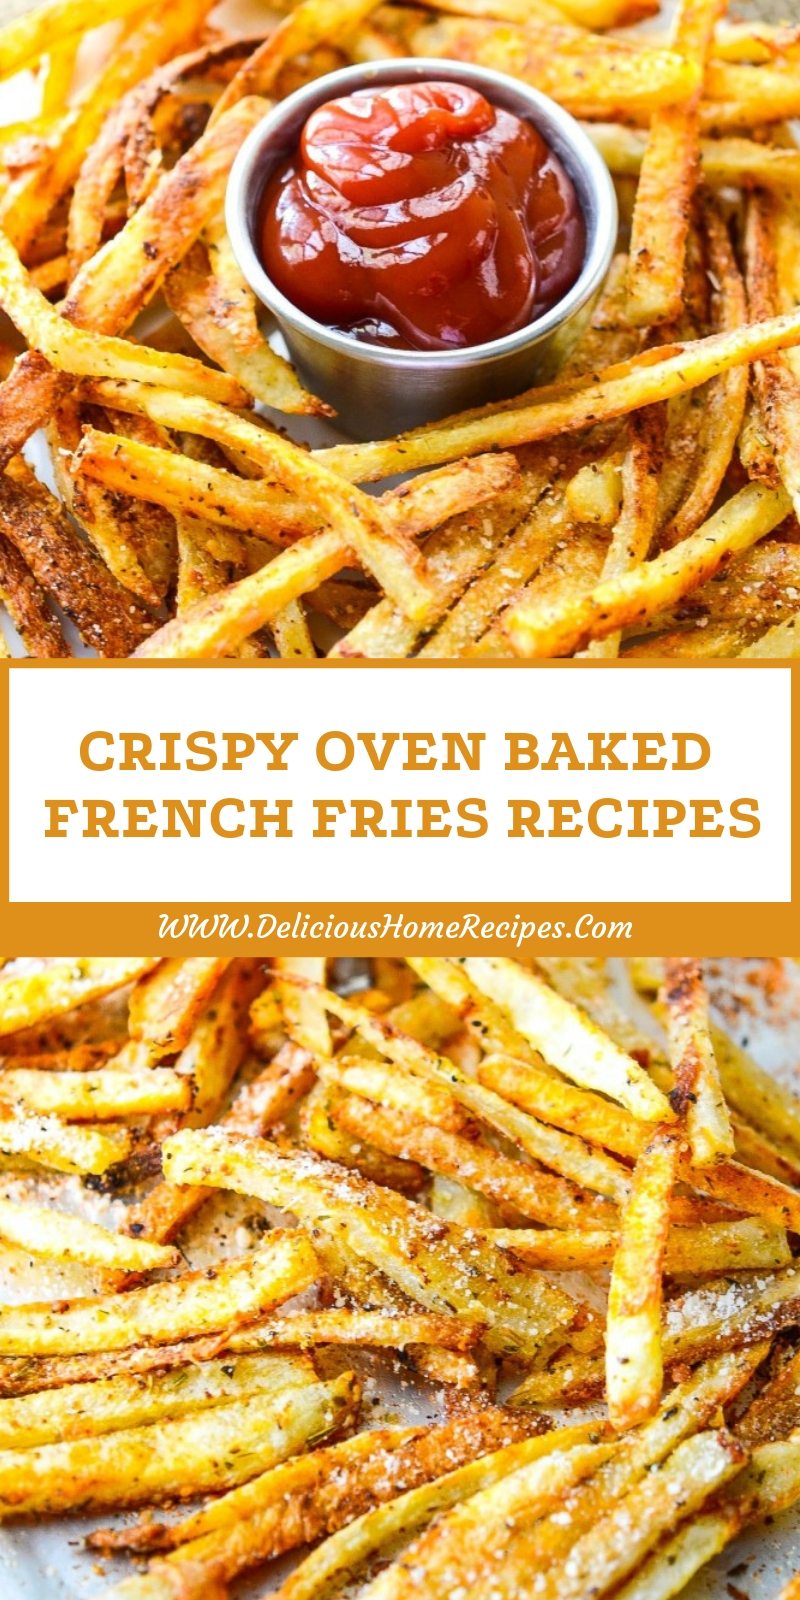 Crispy Oven Baked French Fries Recipes